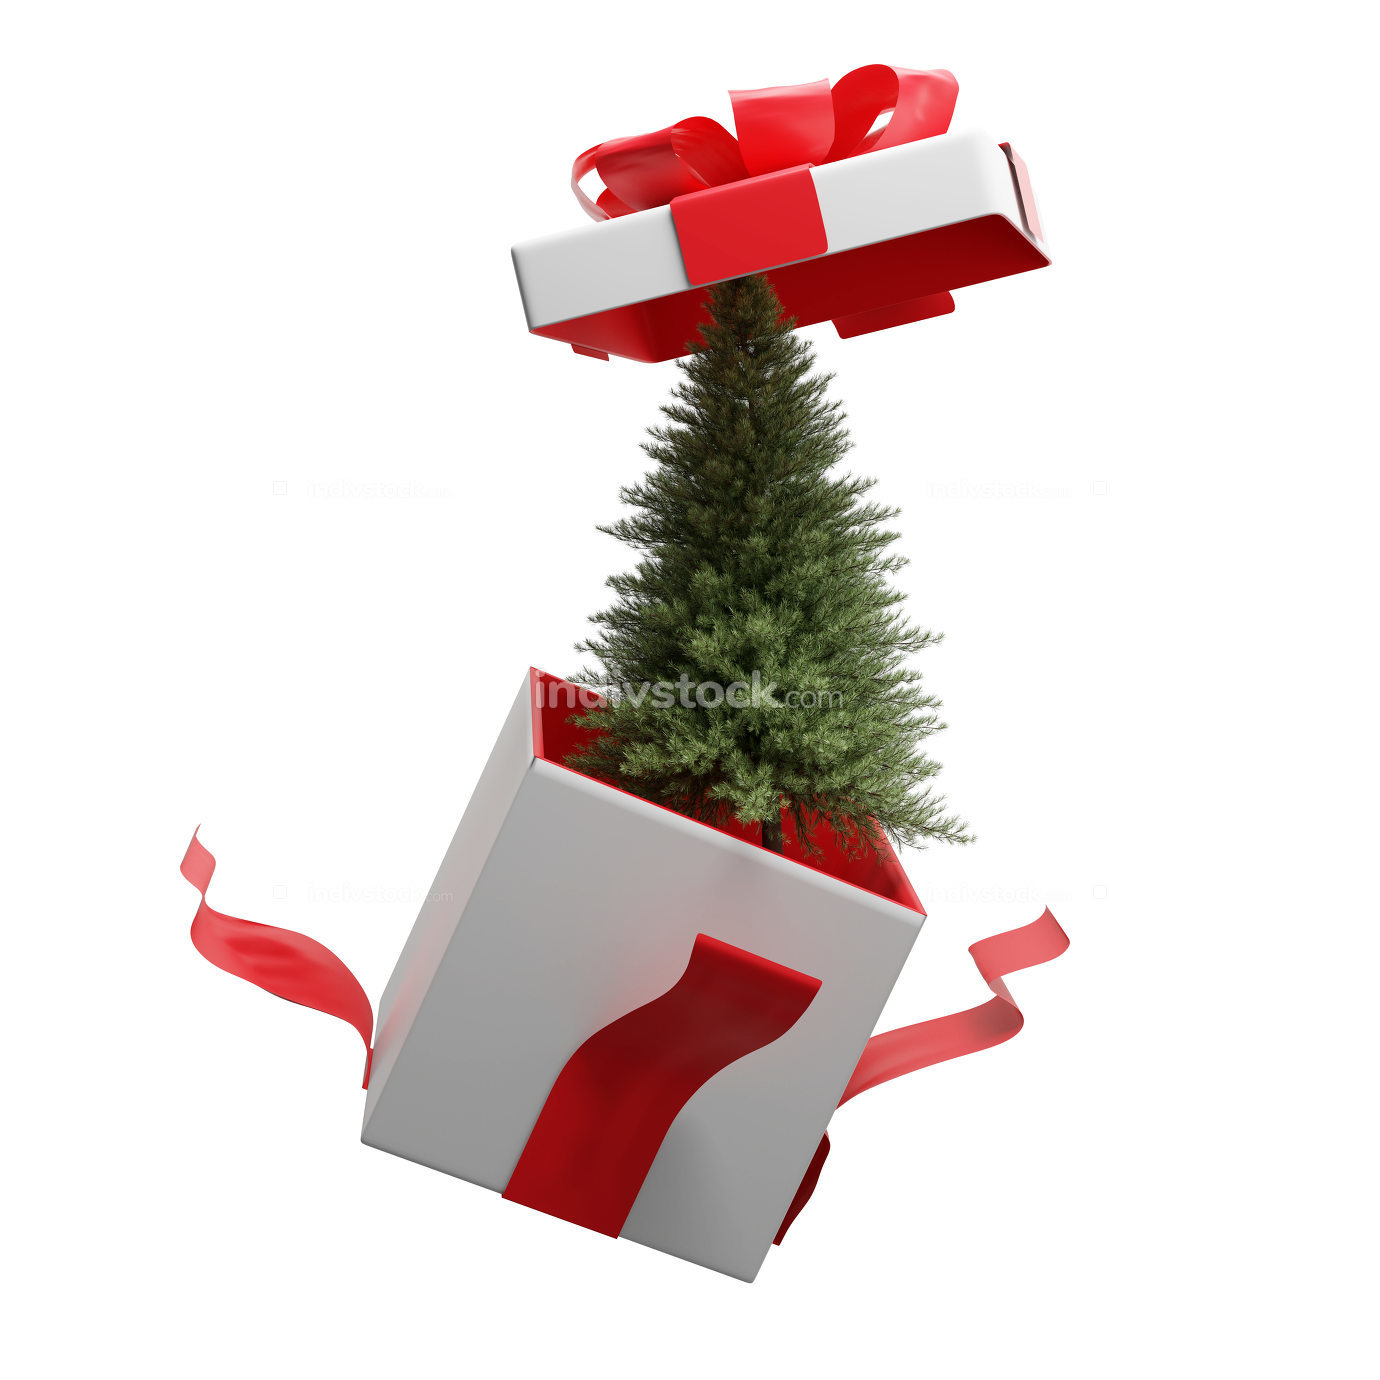 Christmas tree surprise box 3d-illustration